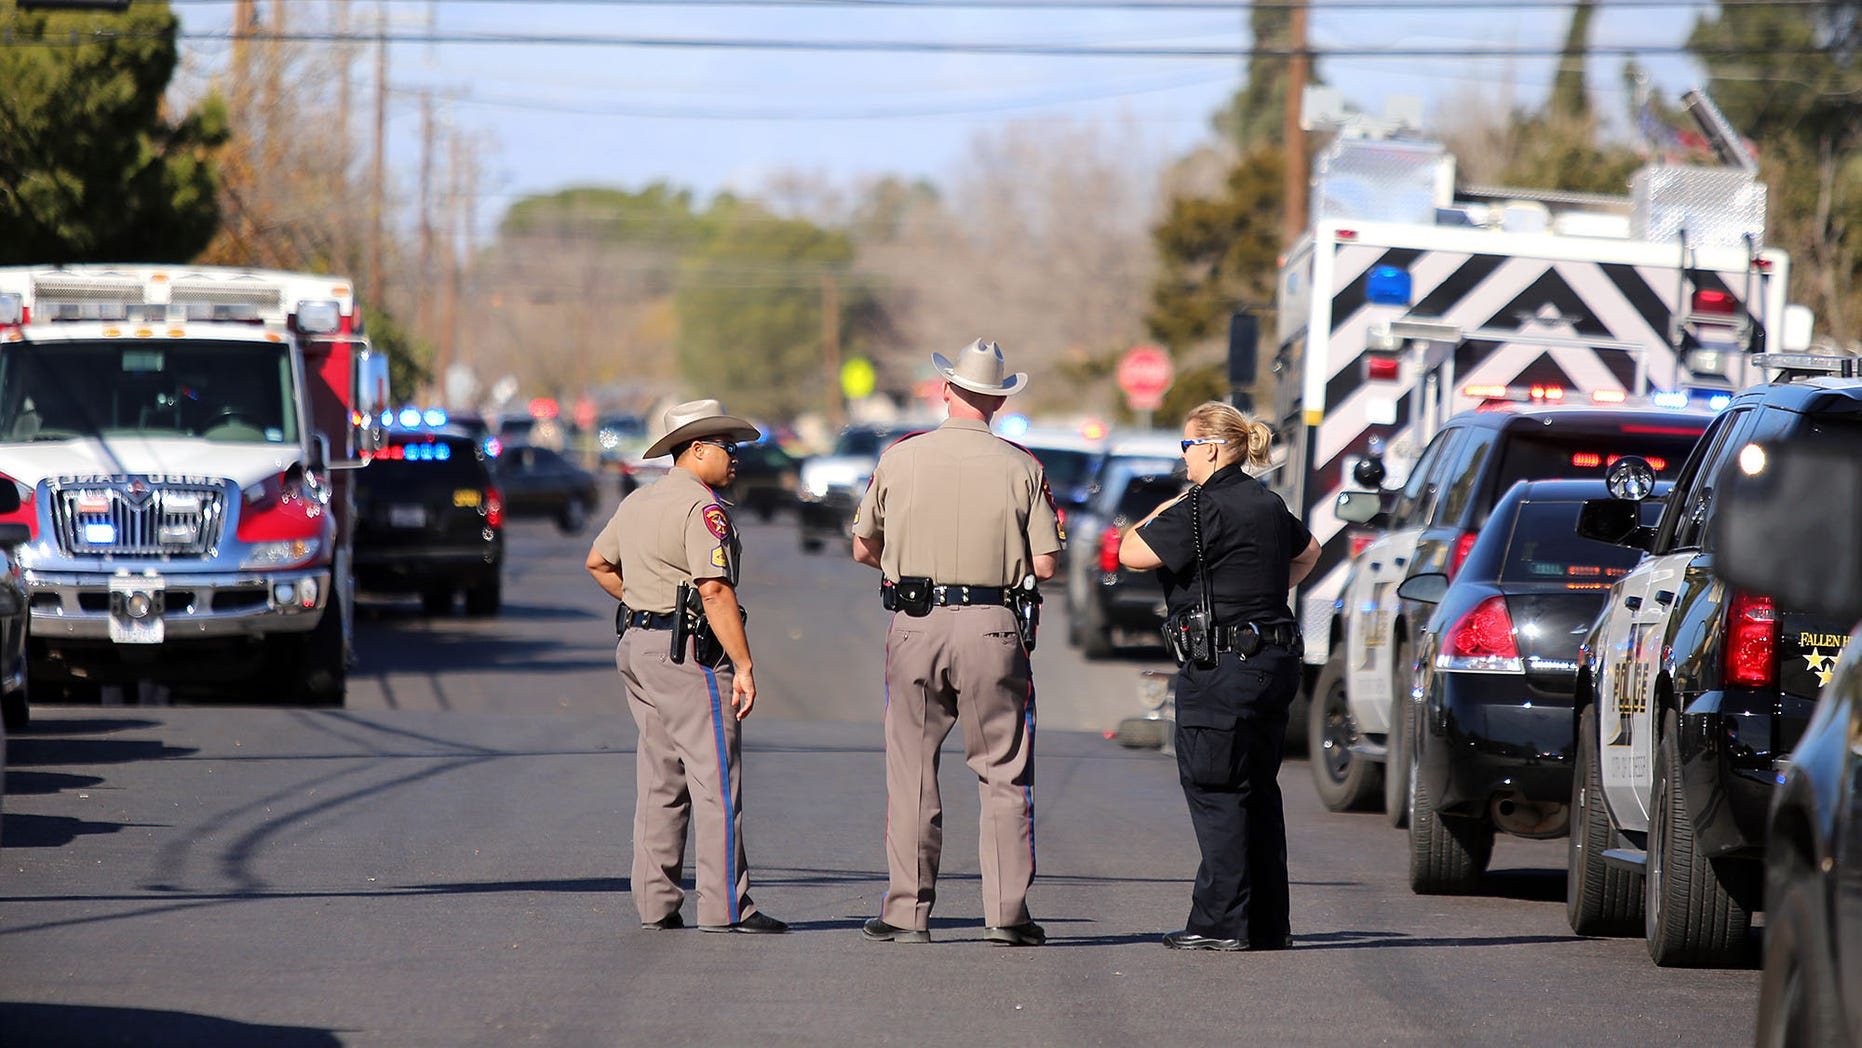 Authorities wait near an apartment complex with a barricaded suspect on Wednesday Dec. 23, 2015, in Odessa, Texas. Authorities say multiple Odessa police officers have been shot while attempting to serve a warrant at the apartment complex, with the suspect barricaded inside. (Edyta Blaszczyk/Odessa American via AP) MANDATORY CREDIT